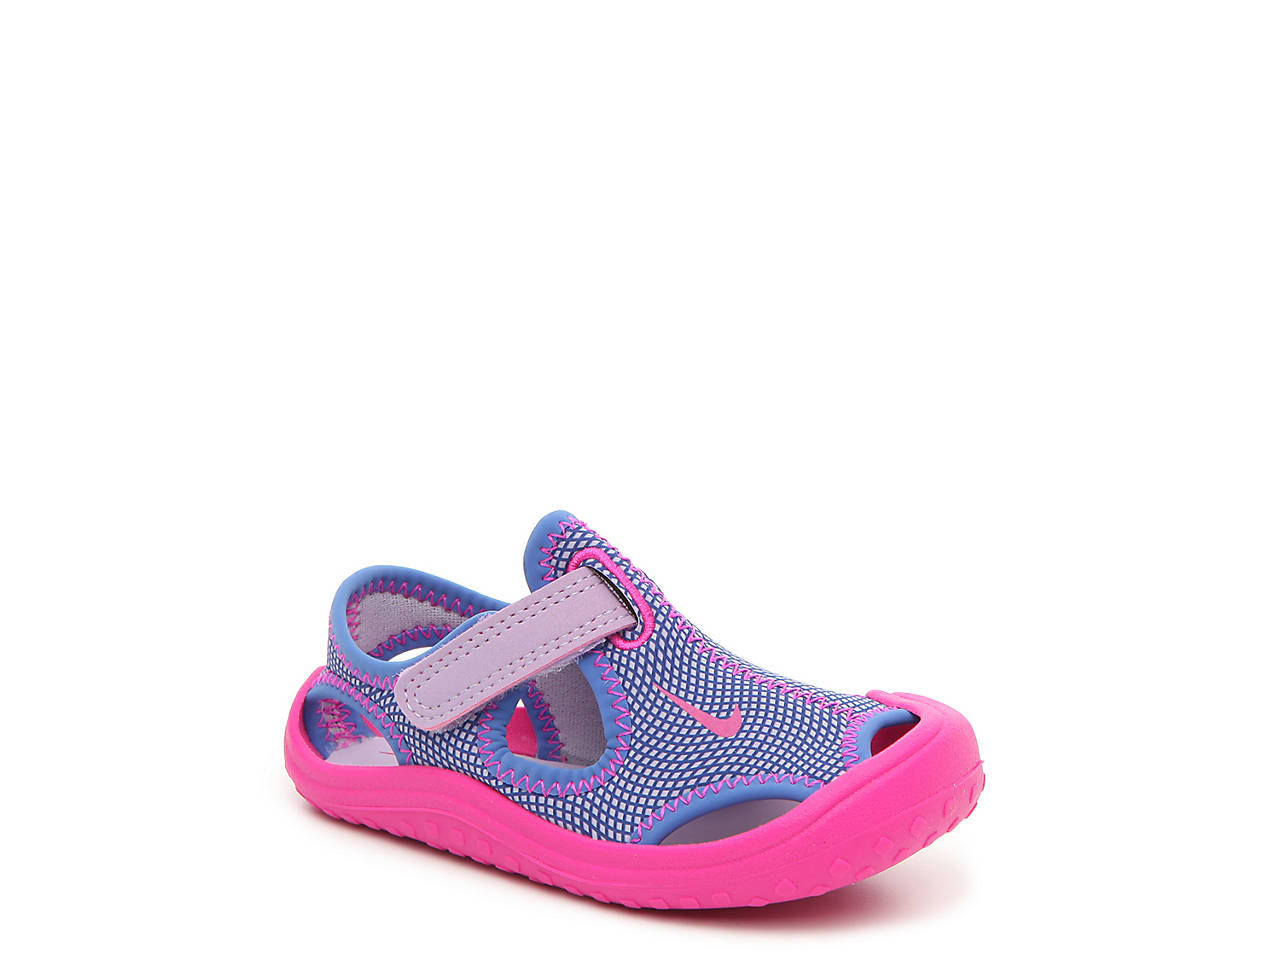 a0892715fd60 Nike Sunray Protect Infant   Toddler Sandal Kids Shoes